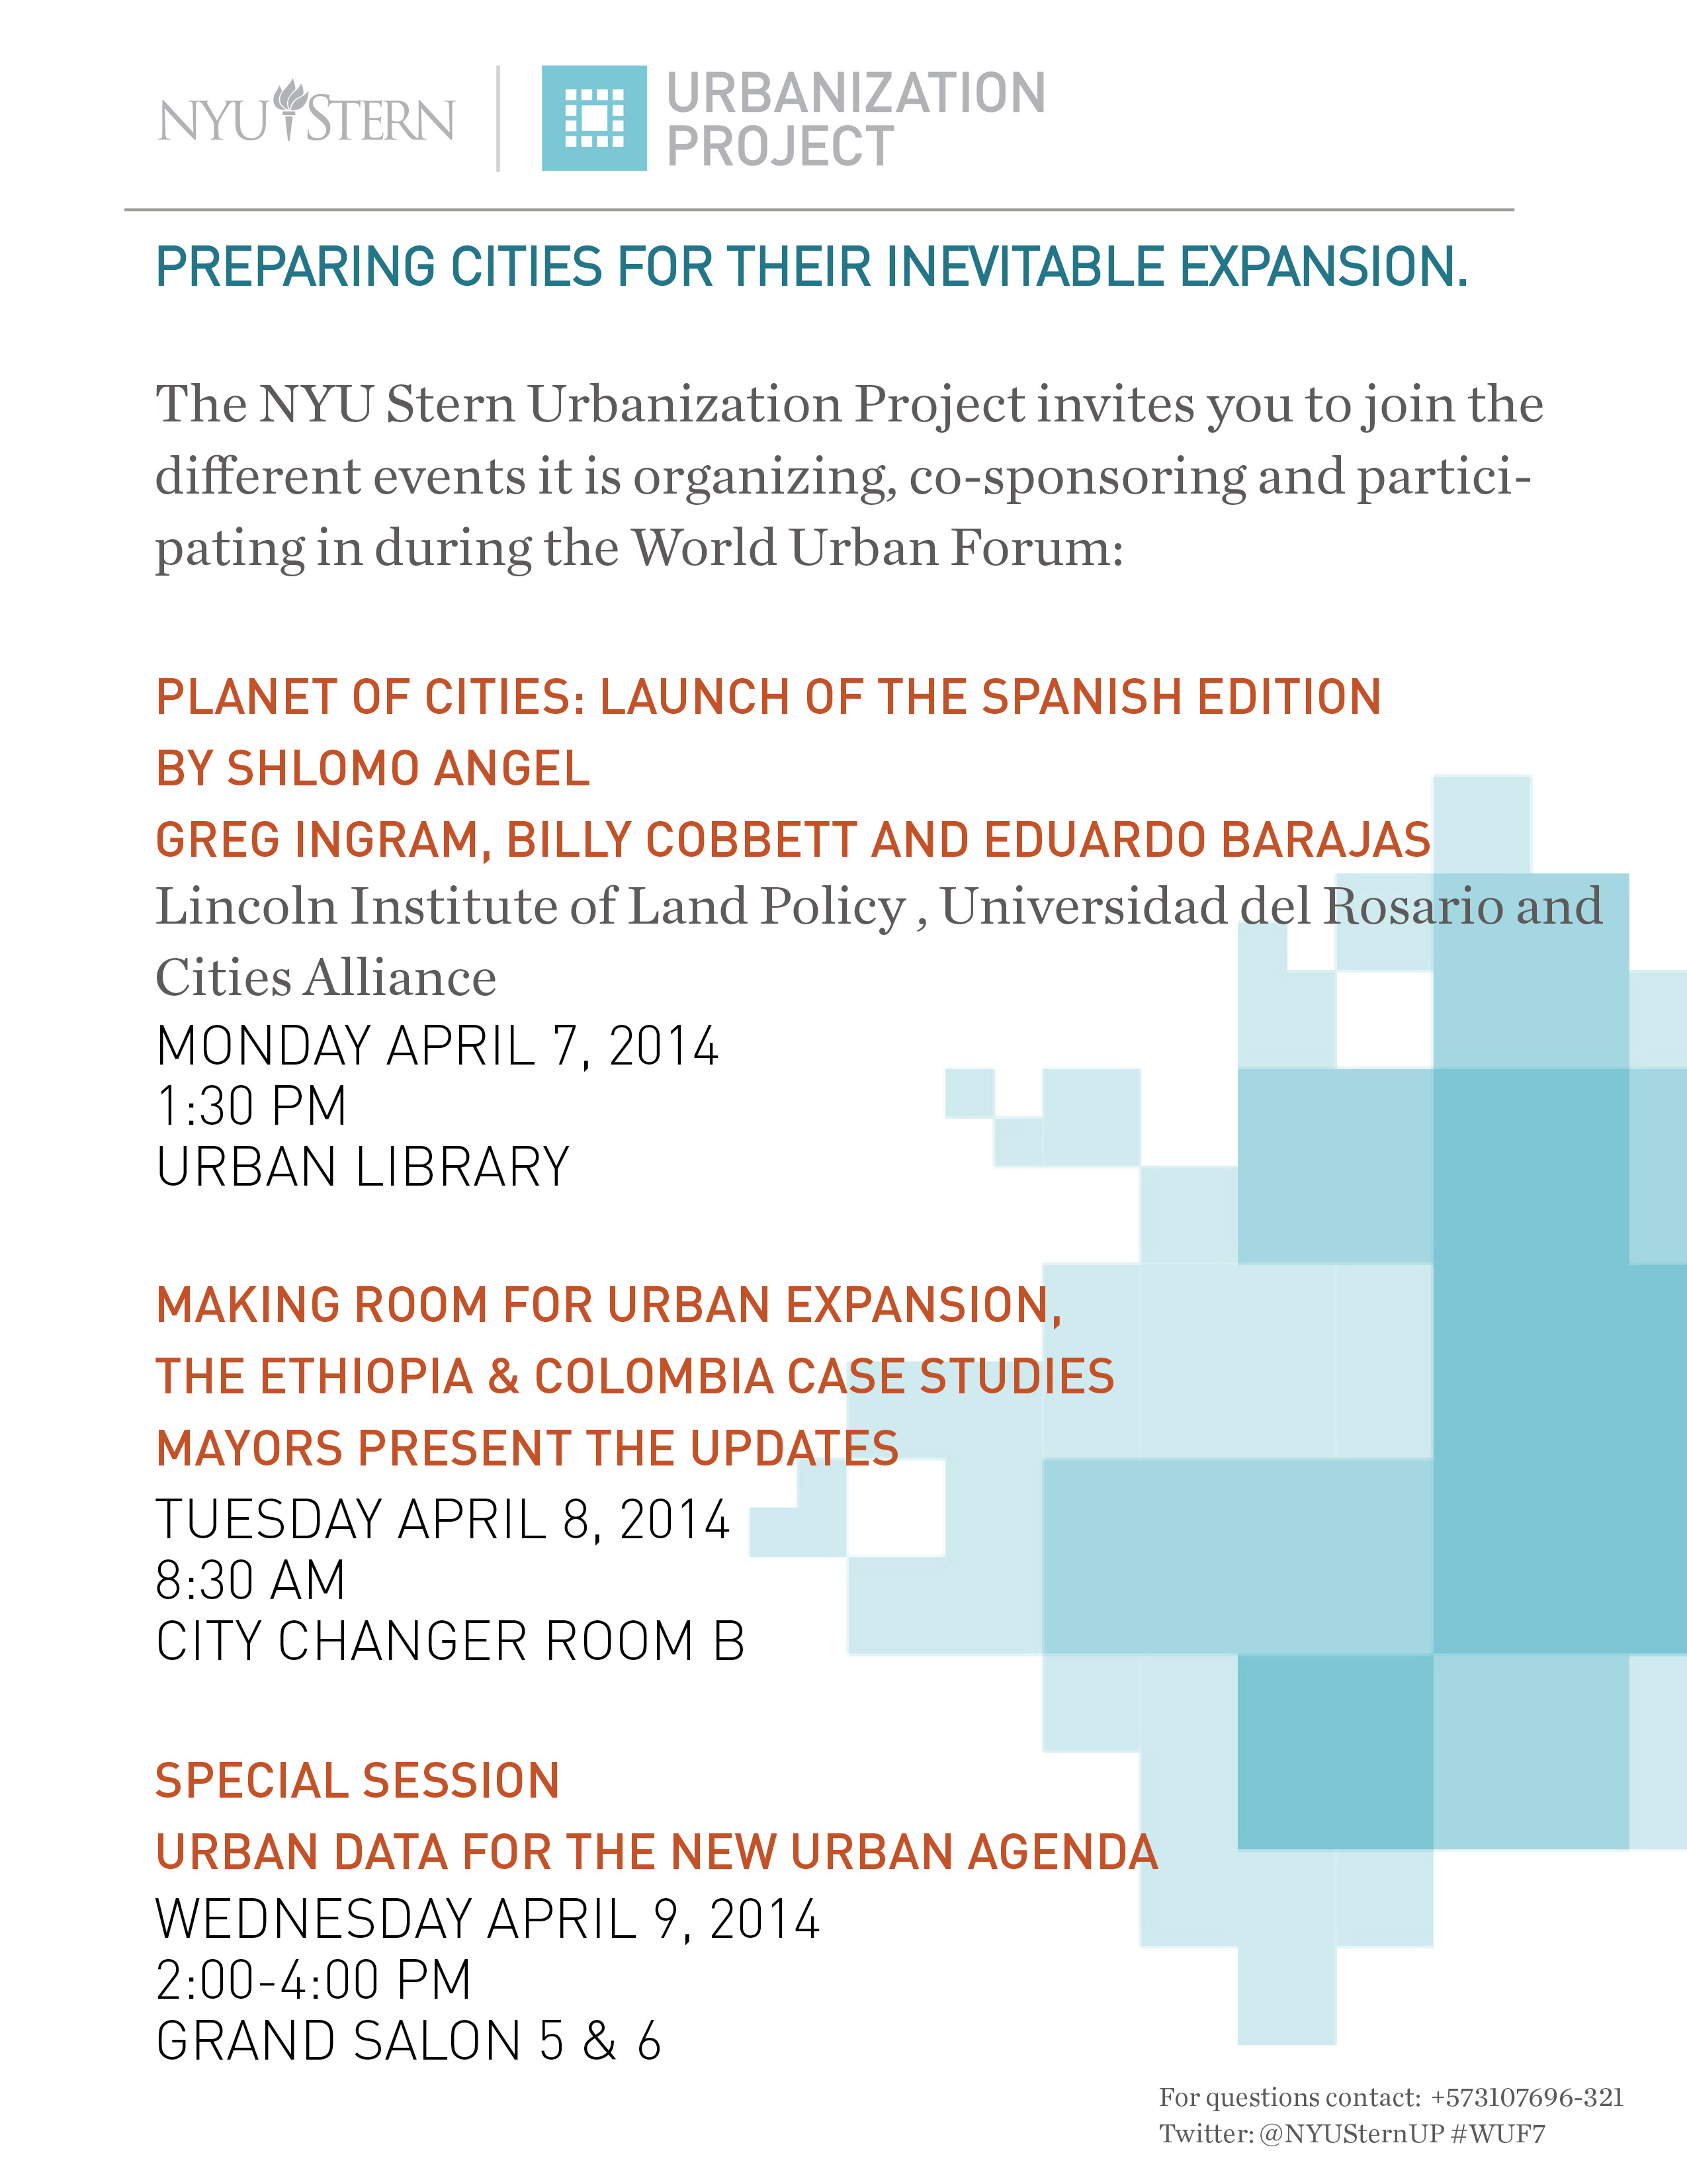 The Urbanization Project At The World Urban Forum In